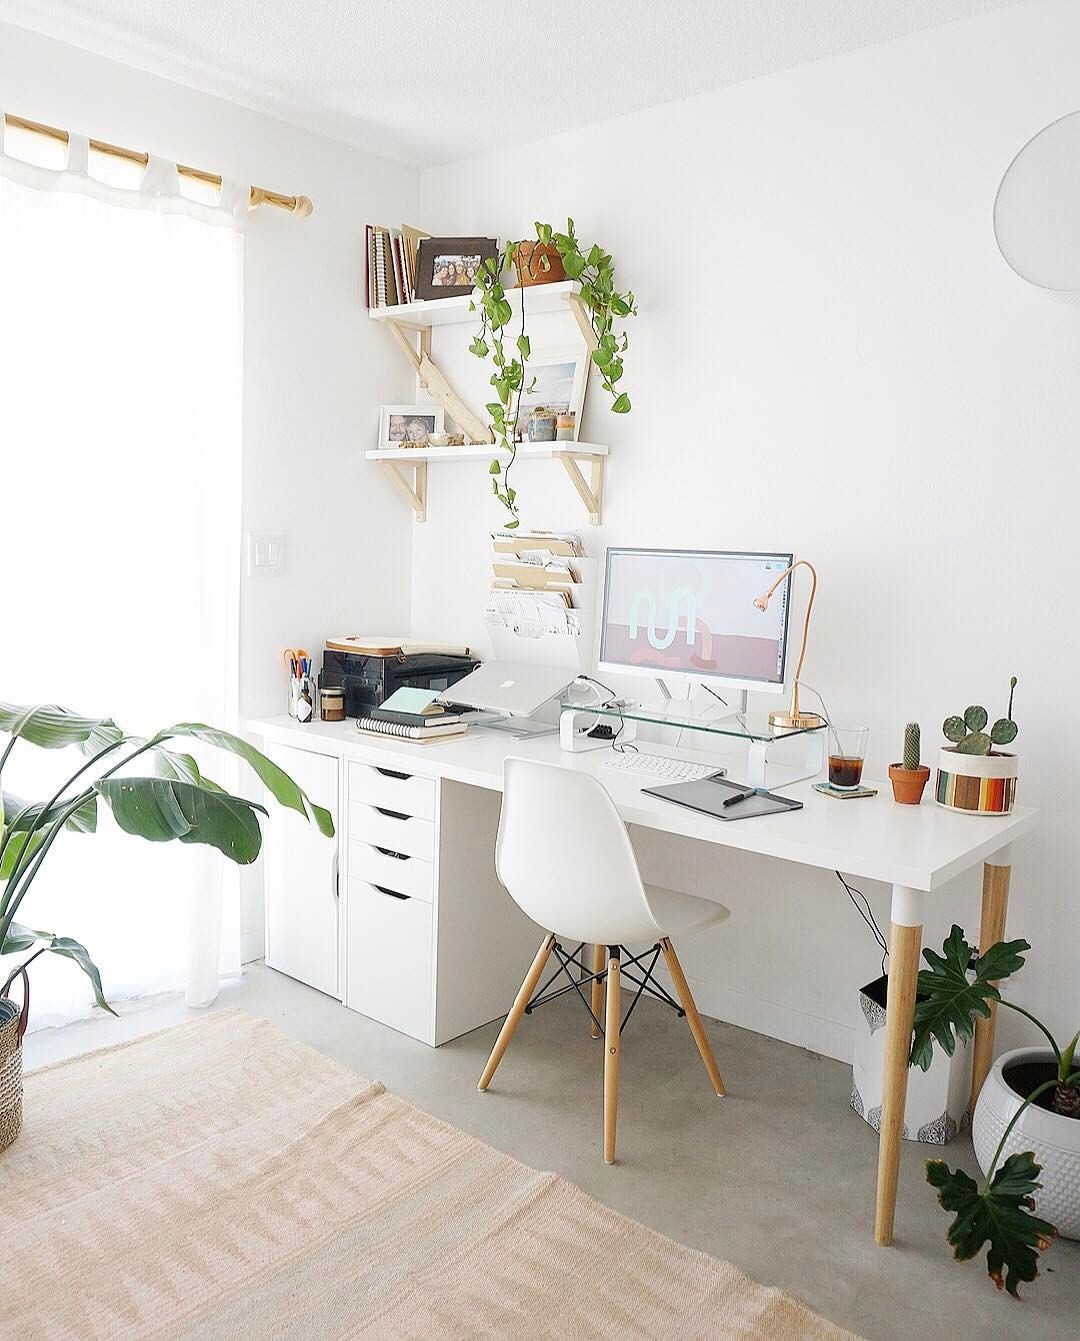 interior design ideas to change your home workspace pinterest office decor and space also rh